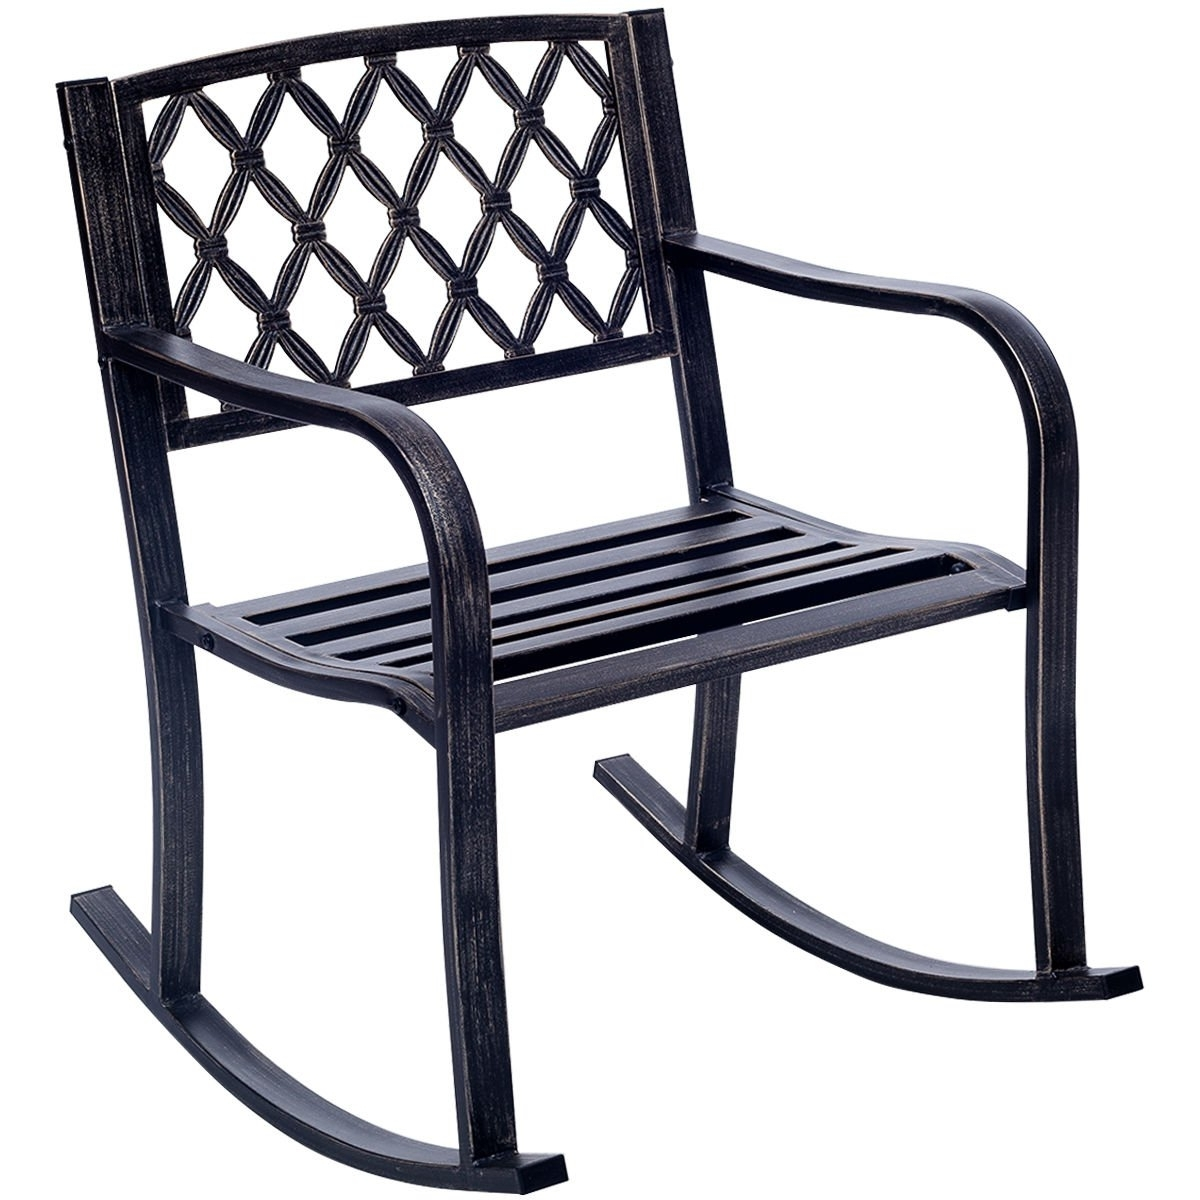 Giantex Patio Metal Rocking Chair Porch Seat Deck Outdoor Backyard Inside Latest Patio Metal Rocking Chairs (View 7 of 15)